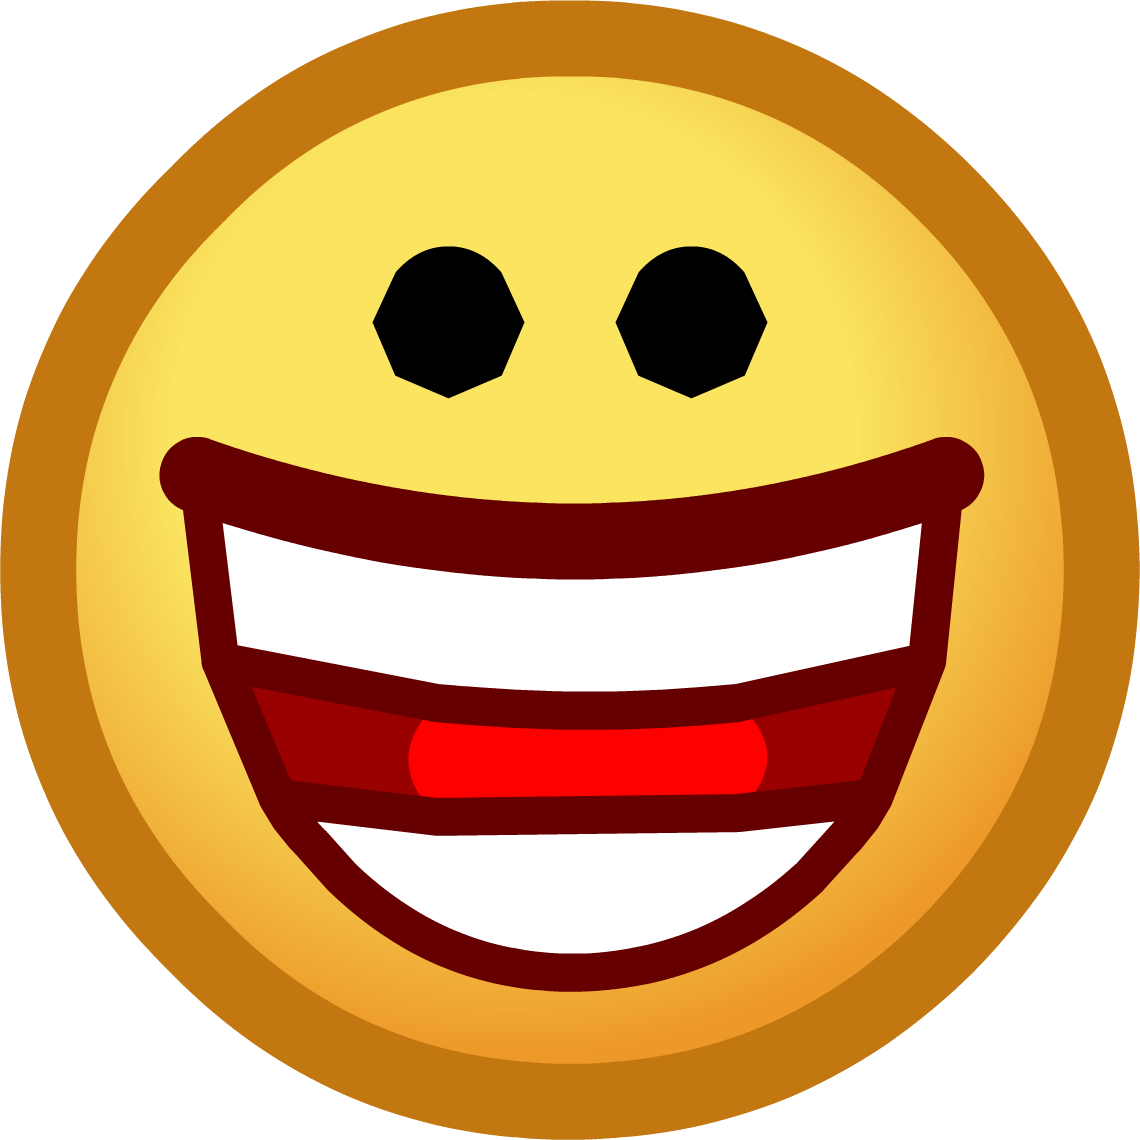 Laughing Face Clipart Free Clip Art Images